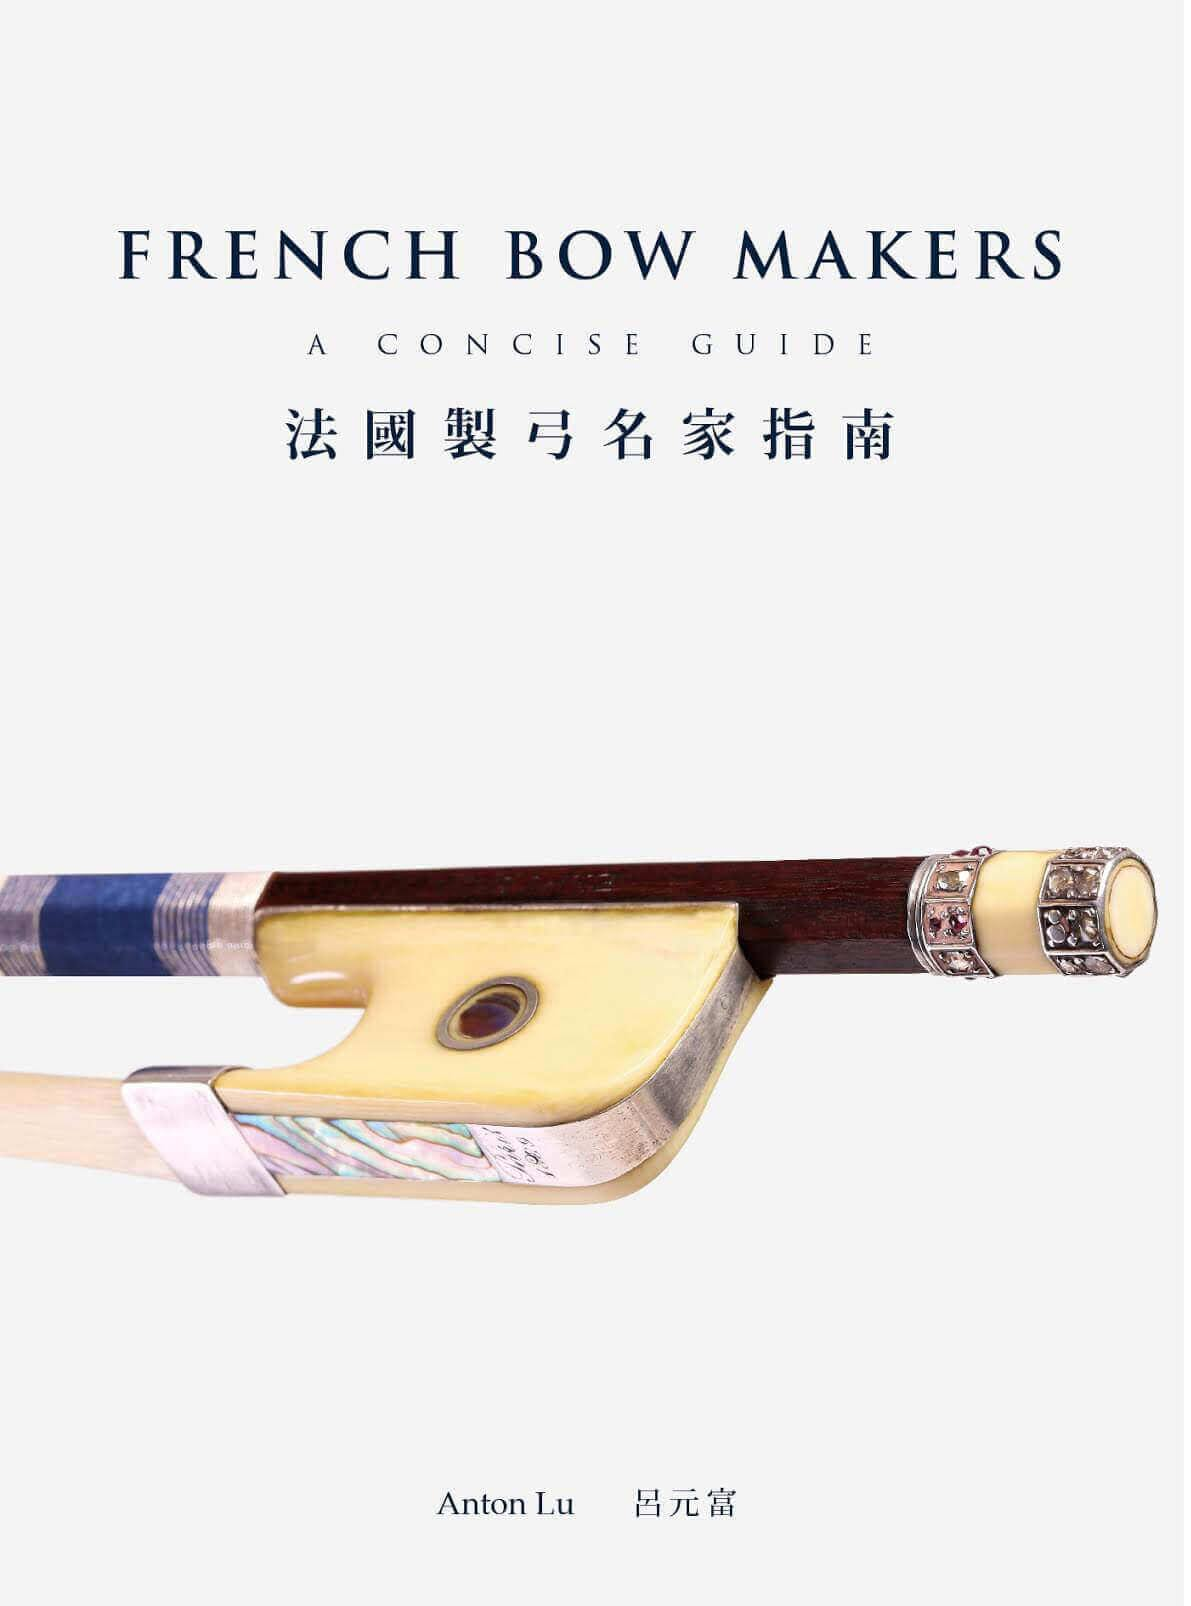 French bow makers : a concise guide - Anton LU - laflutedepan.com